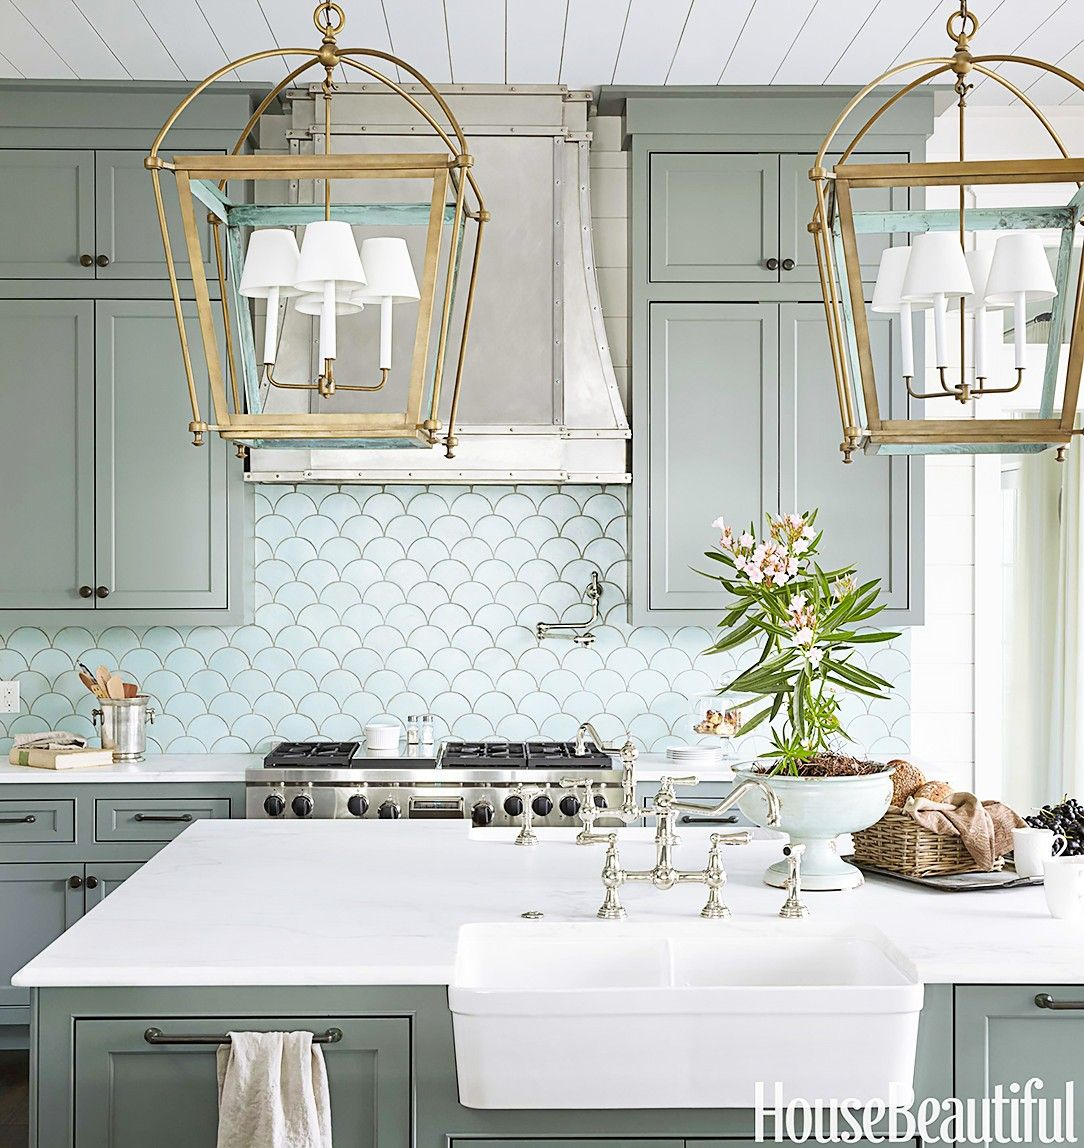 20 Gorgeous Green Kitchen Cabinet Ideas: Don't Decorate Your Home Without These 10 Must-Know Rules